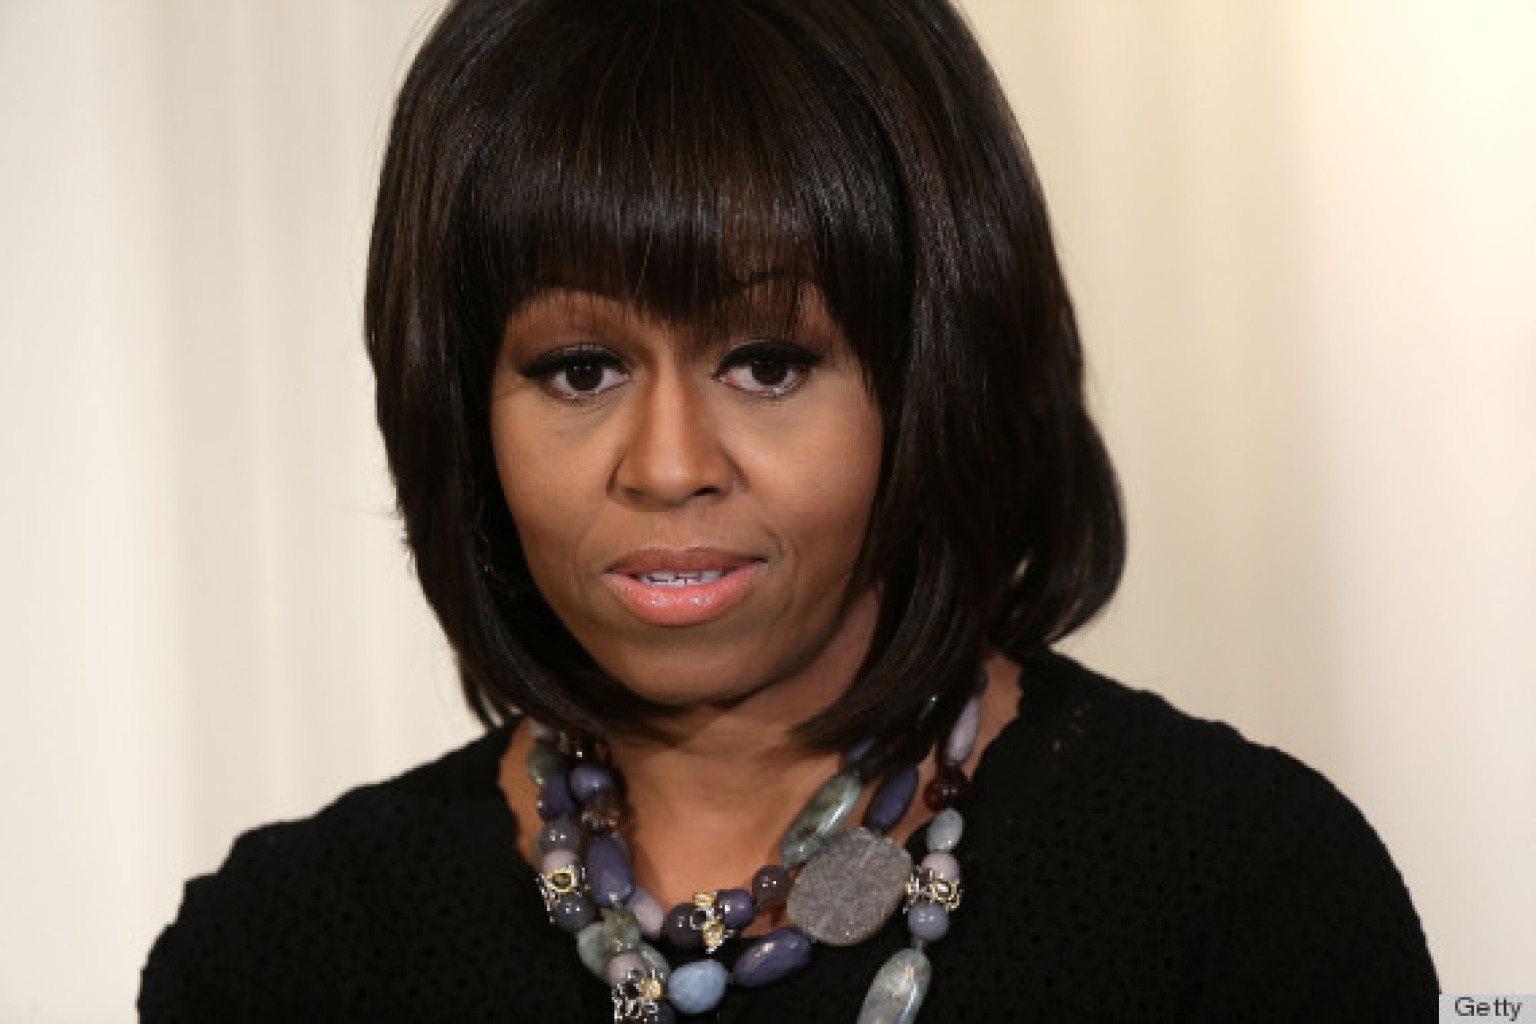 michelle obama on ditching her bangs: 'it's hard to make speeches